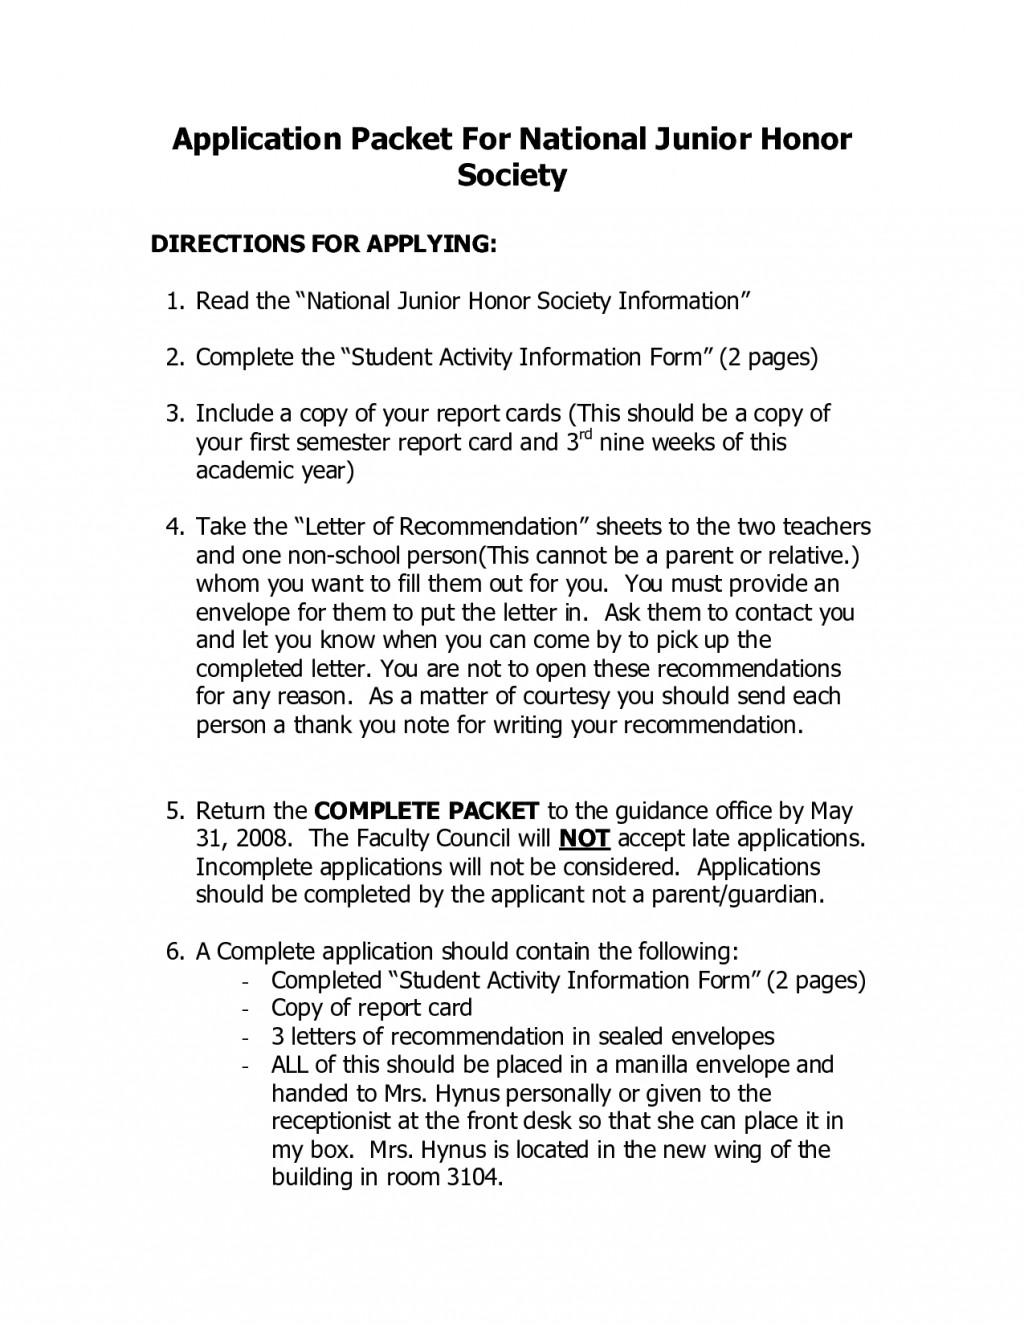 008 National Junior Honor Society Essay Samples Example Letter Of Recommendation For High School Student Essays L Unusual Large